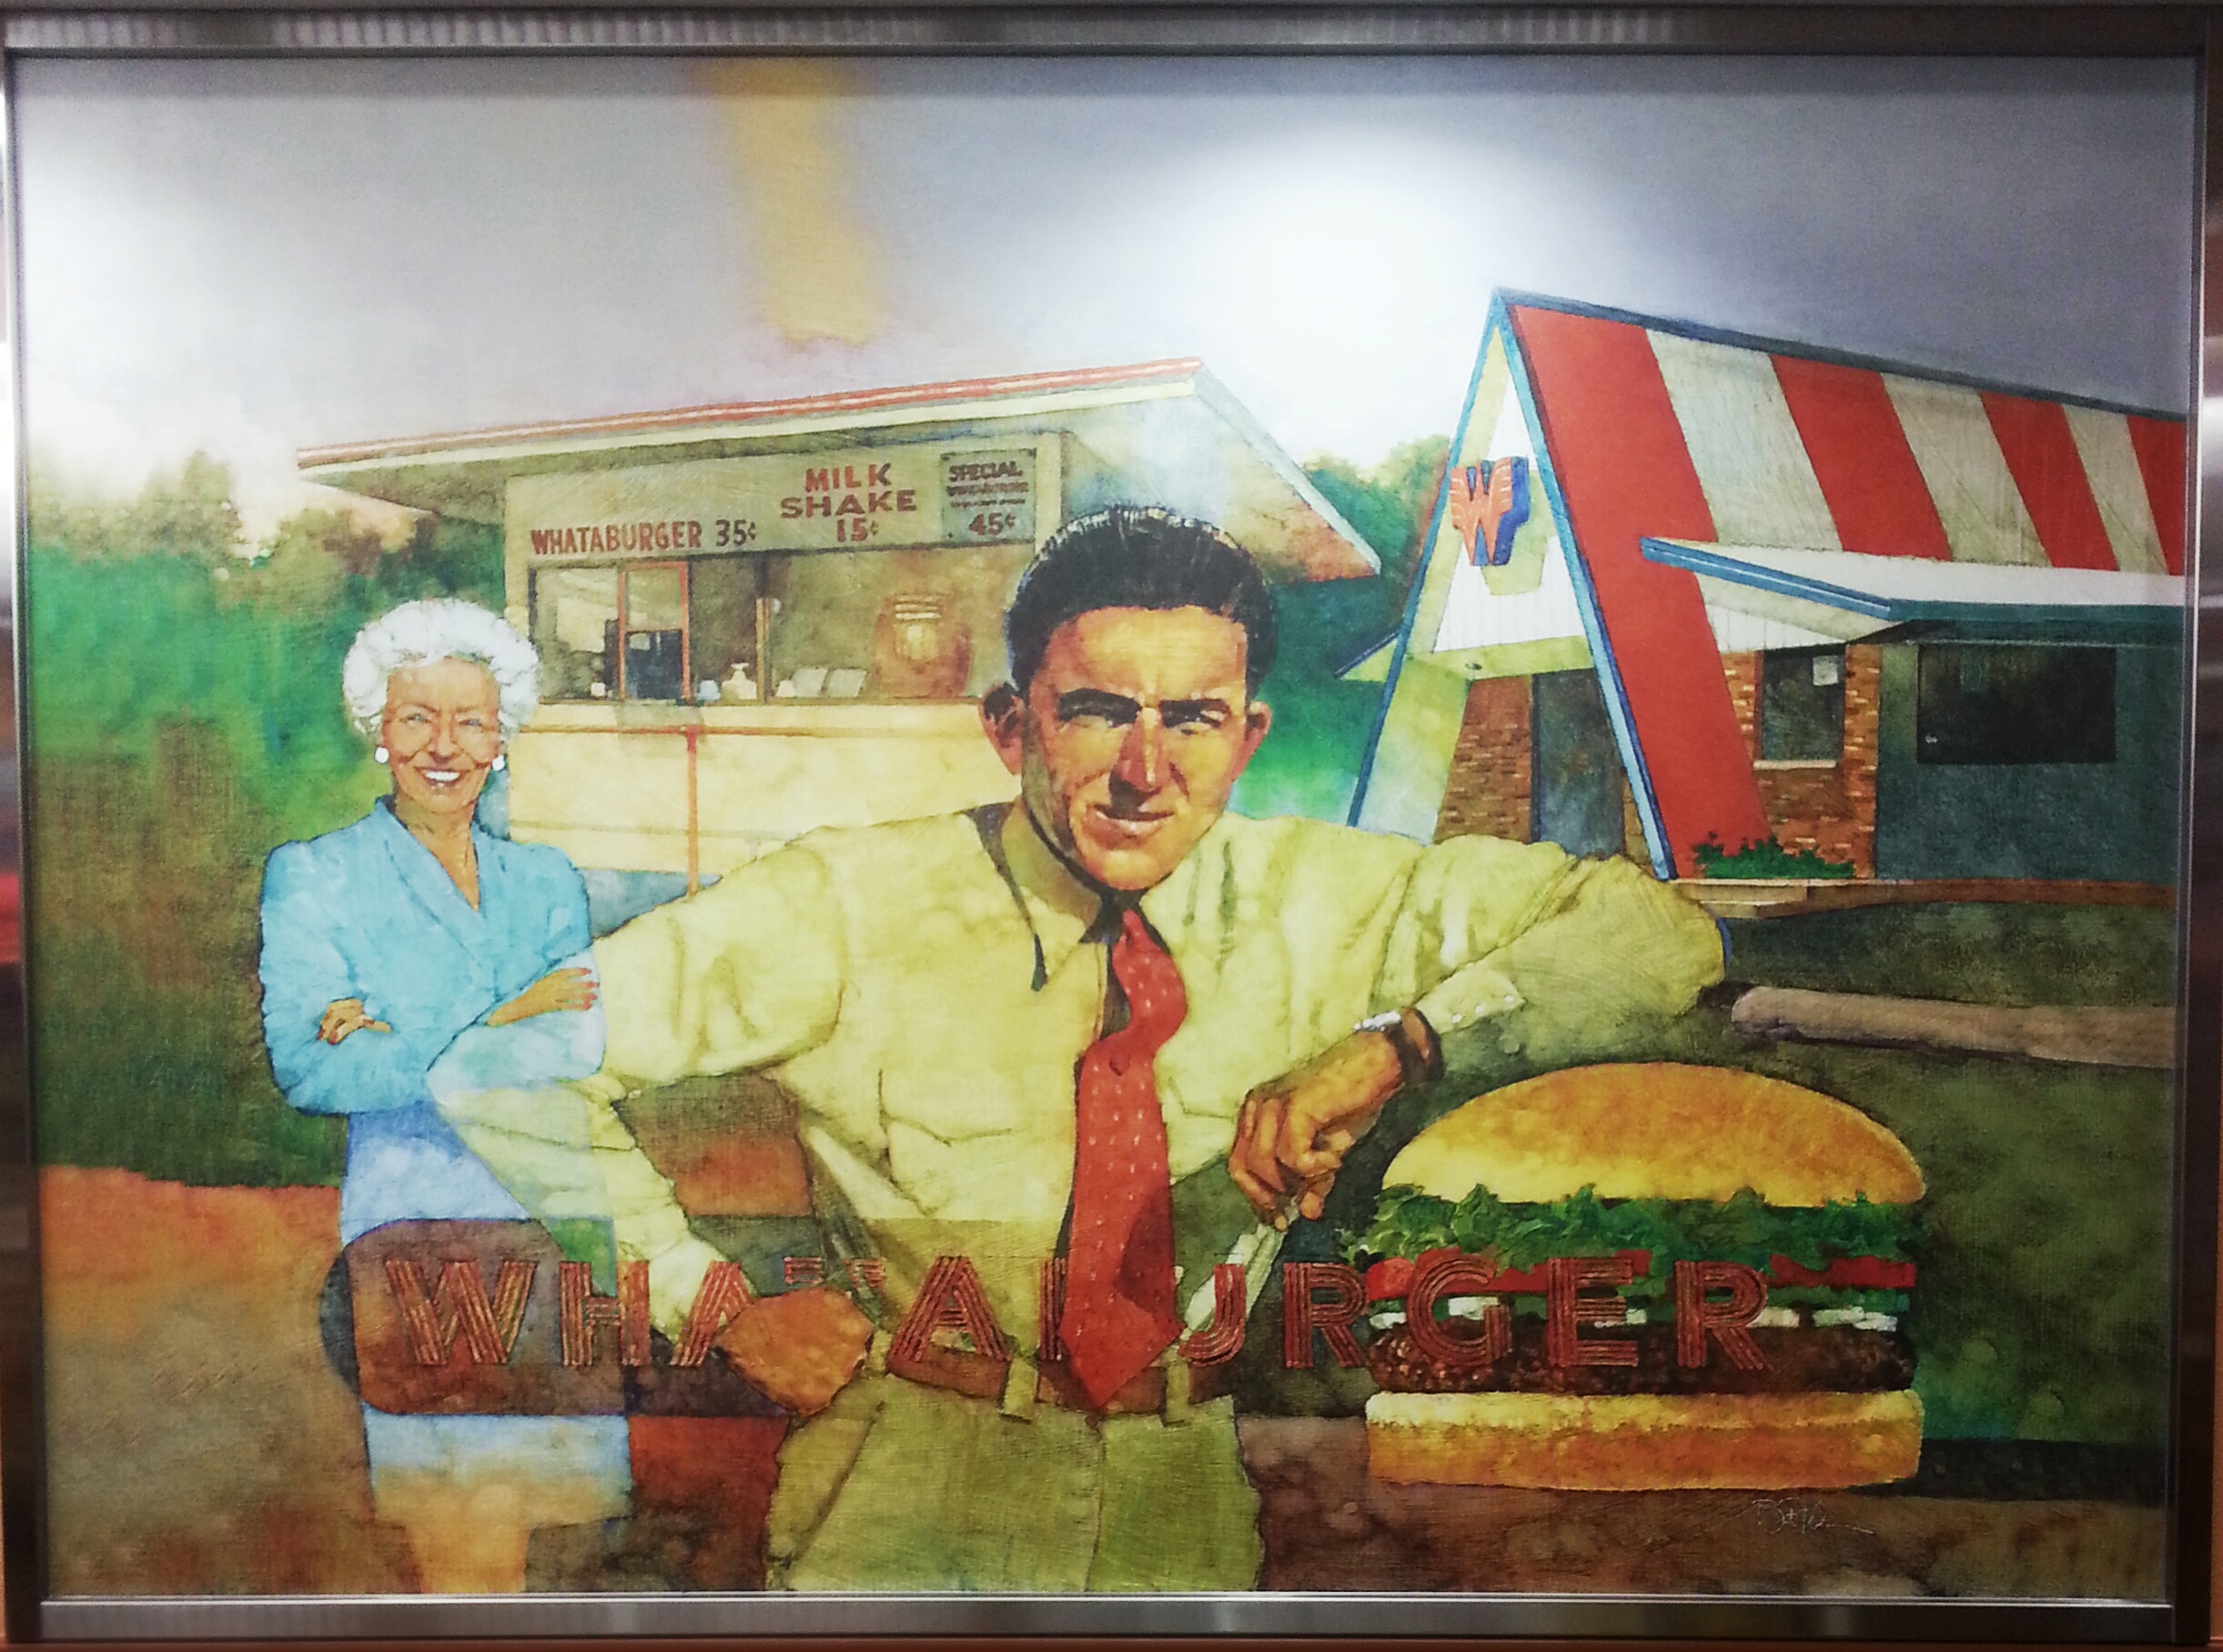 Whataburger art